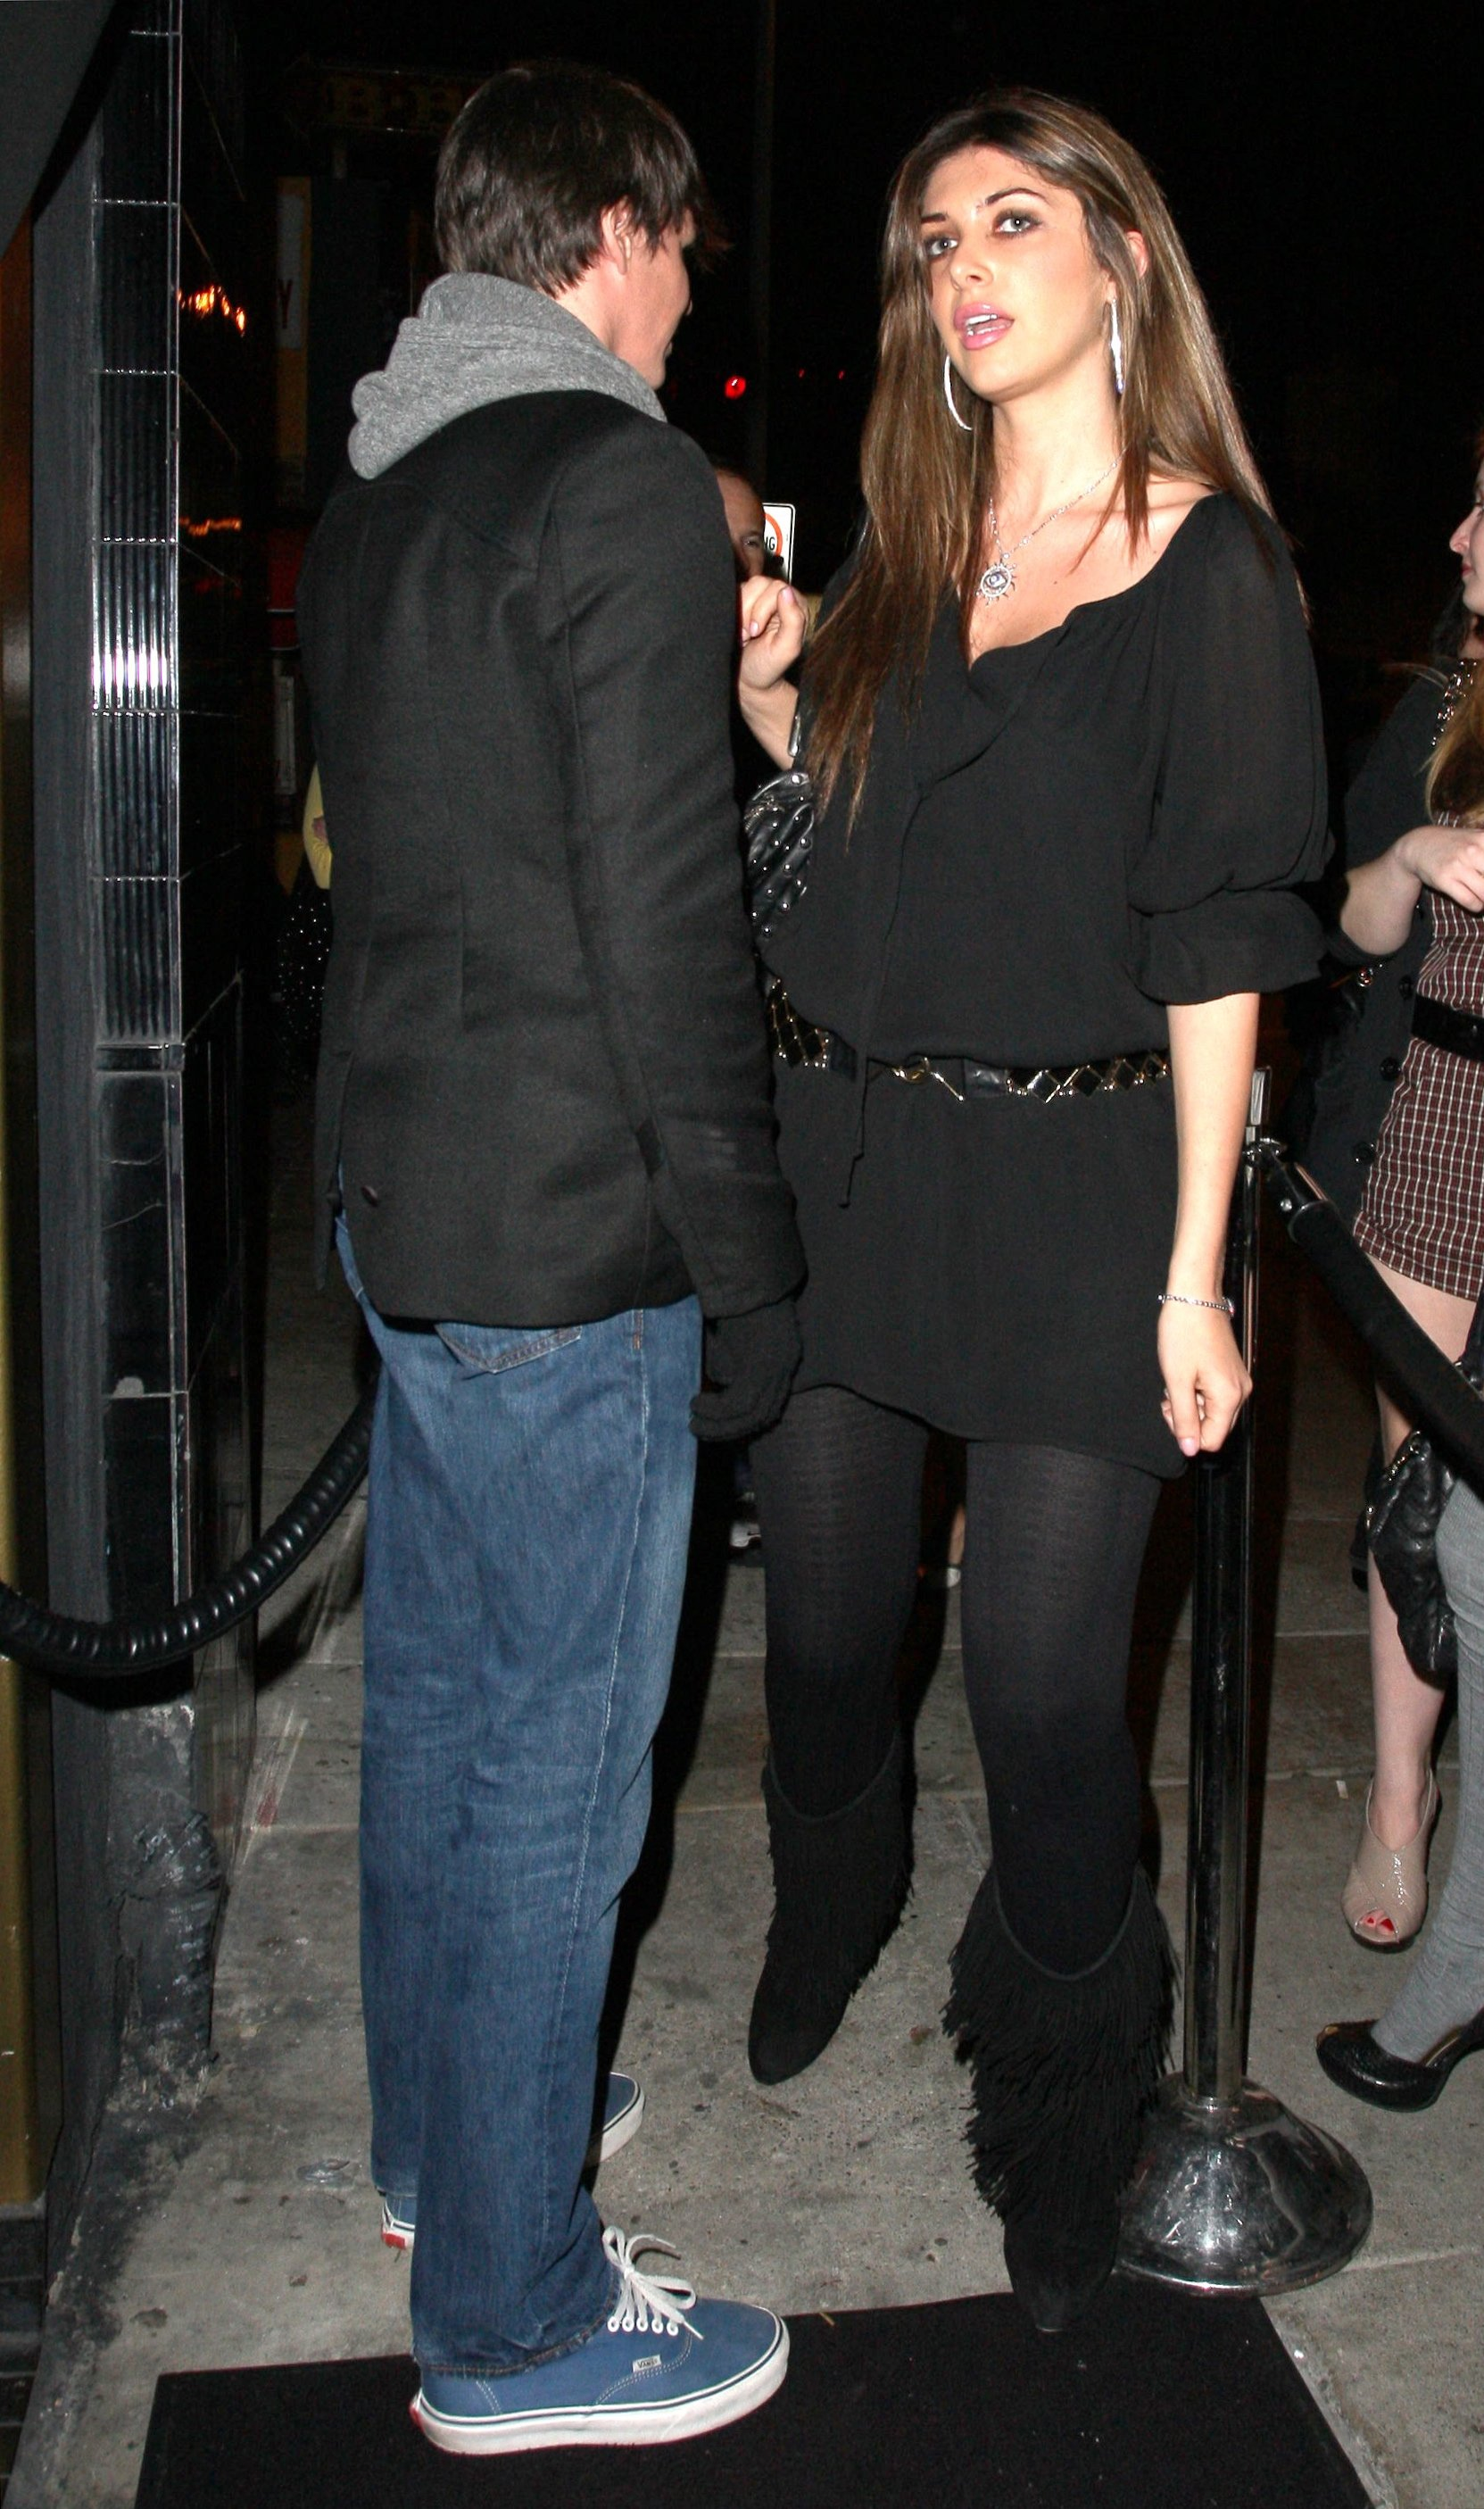 64166_Brittny_Gastineau_2009-02-26_-_arriving_at_Bar_Deluxe_in_Hollywood_133_122_387lo.jpg